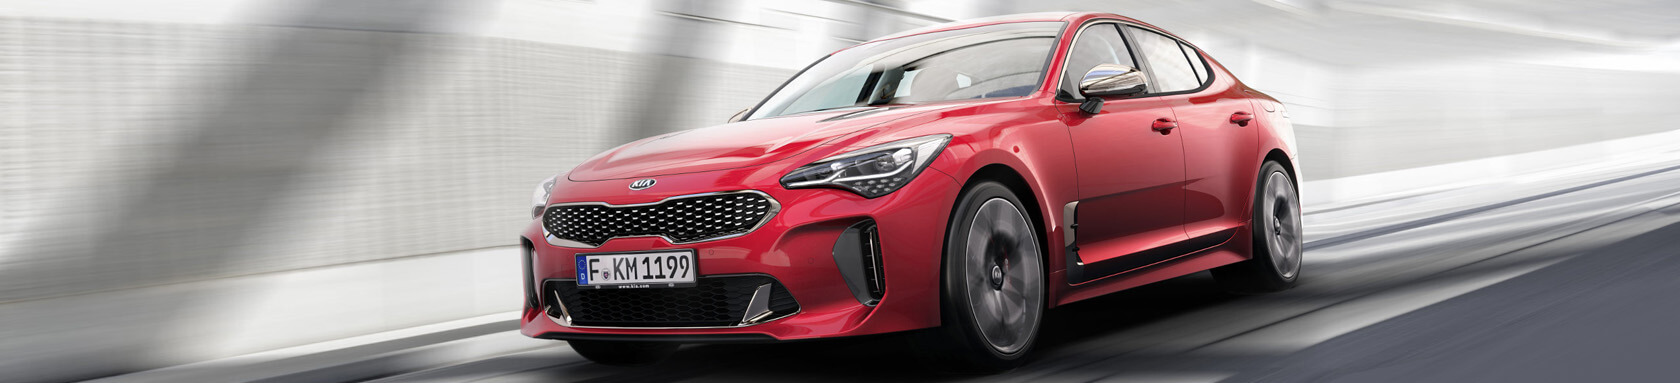 Buy Quality Used Cars in Sydney | Suttons City Kia